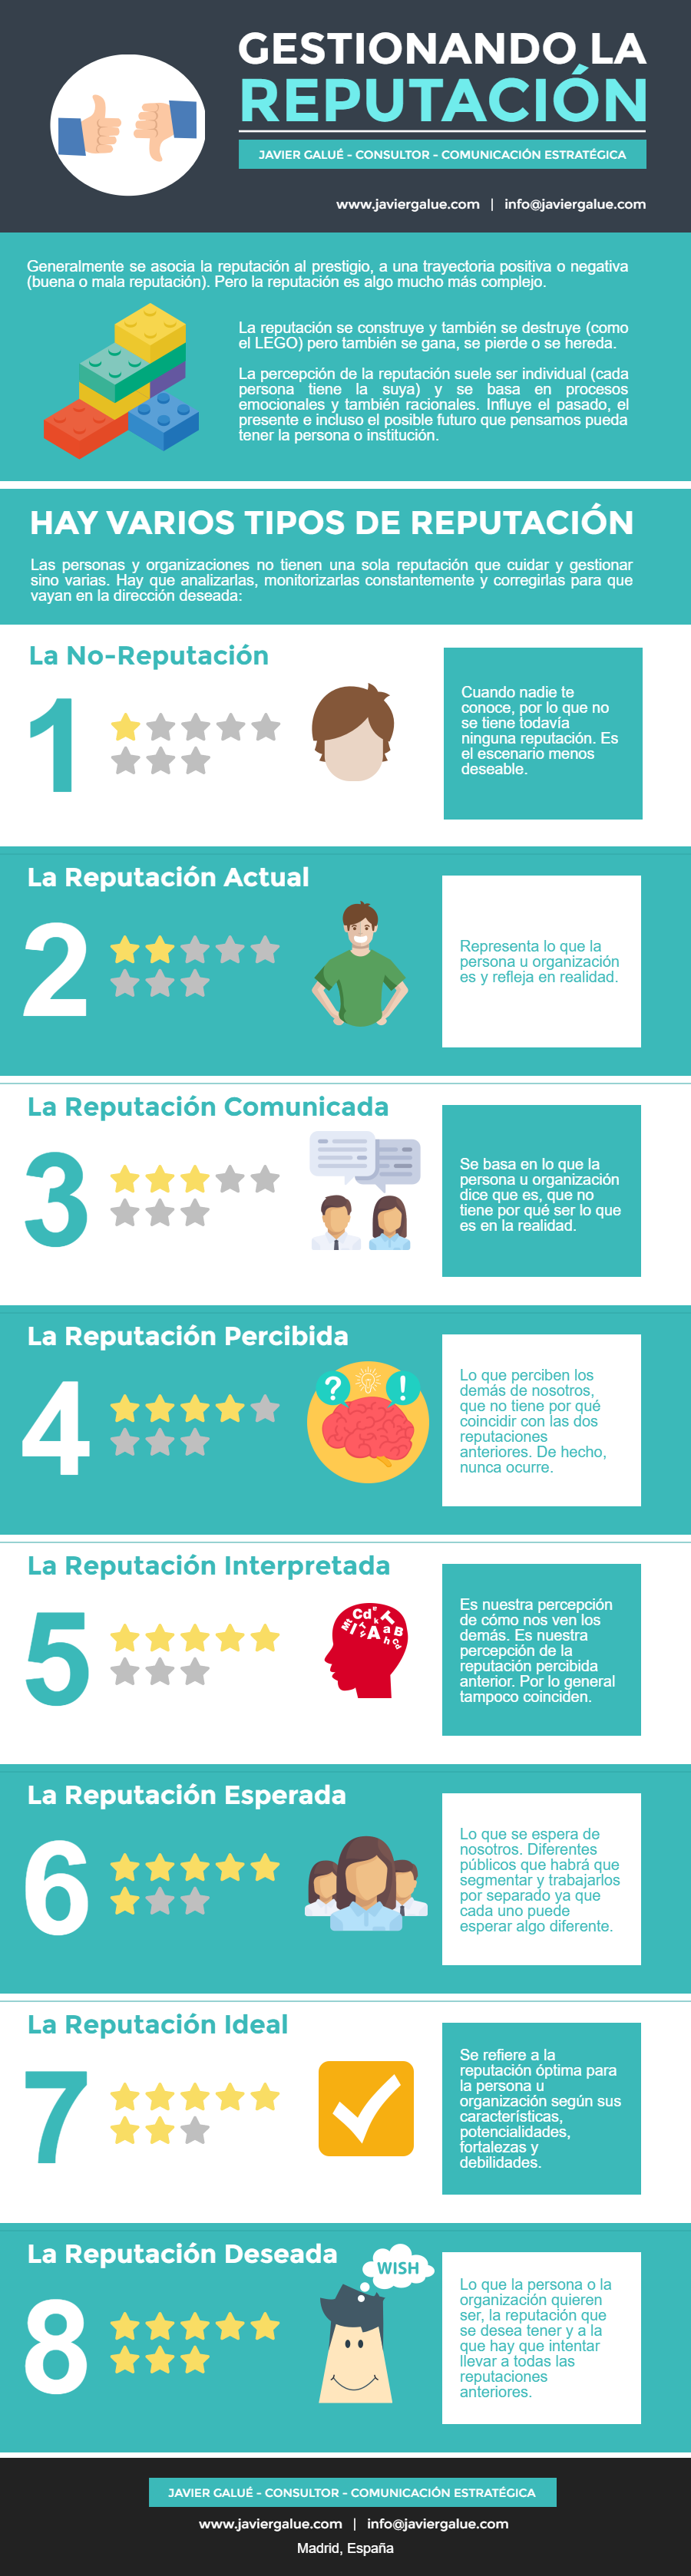 Gestionando la Reputación #infografia #infographic #marketing